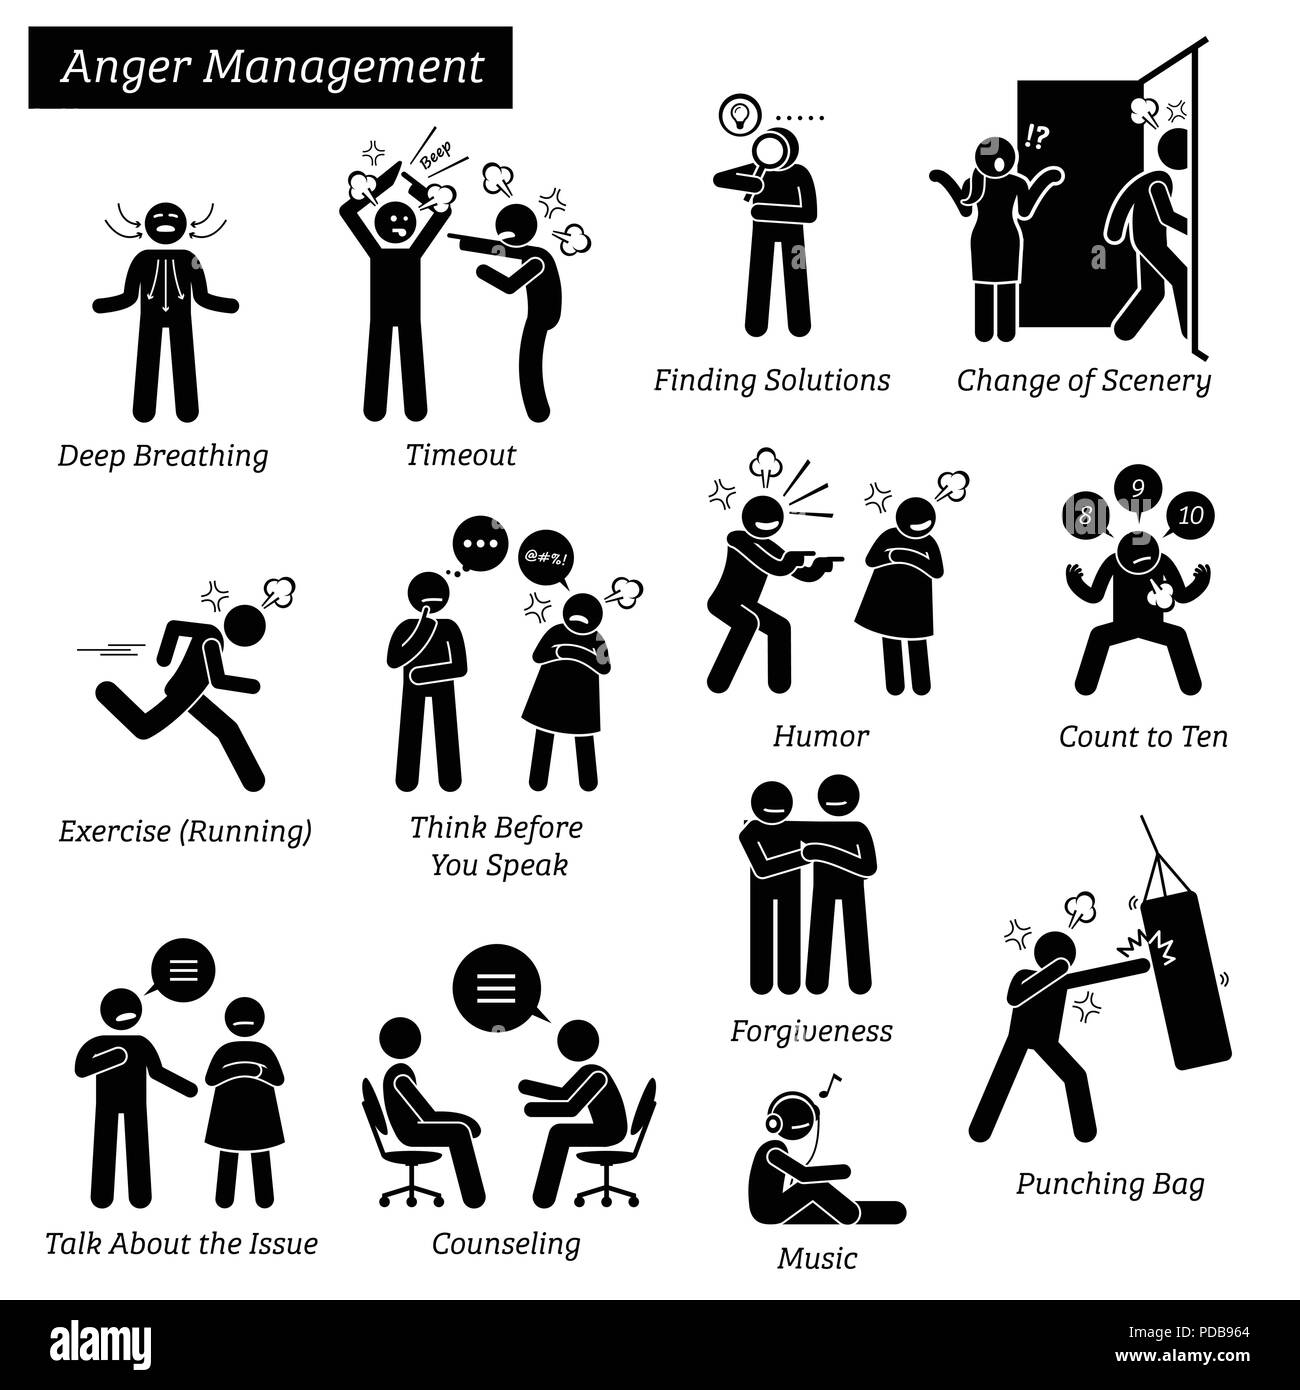 Anger Management Stick Figure Pictogram Icons. Stock Vector